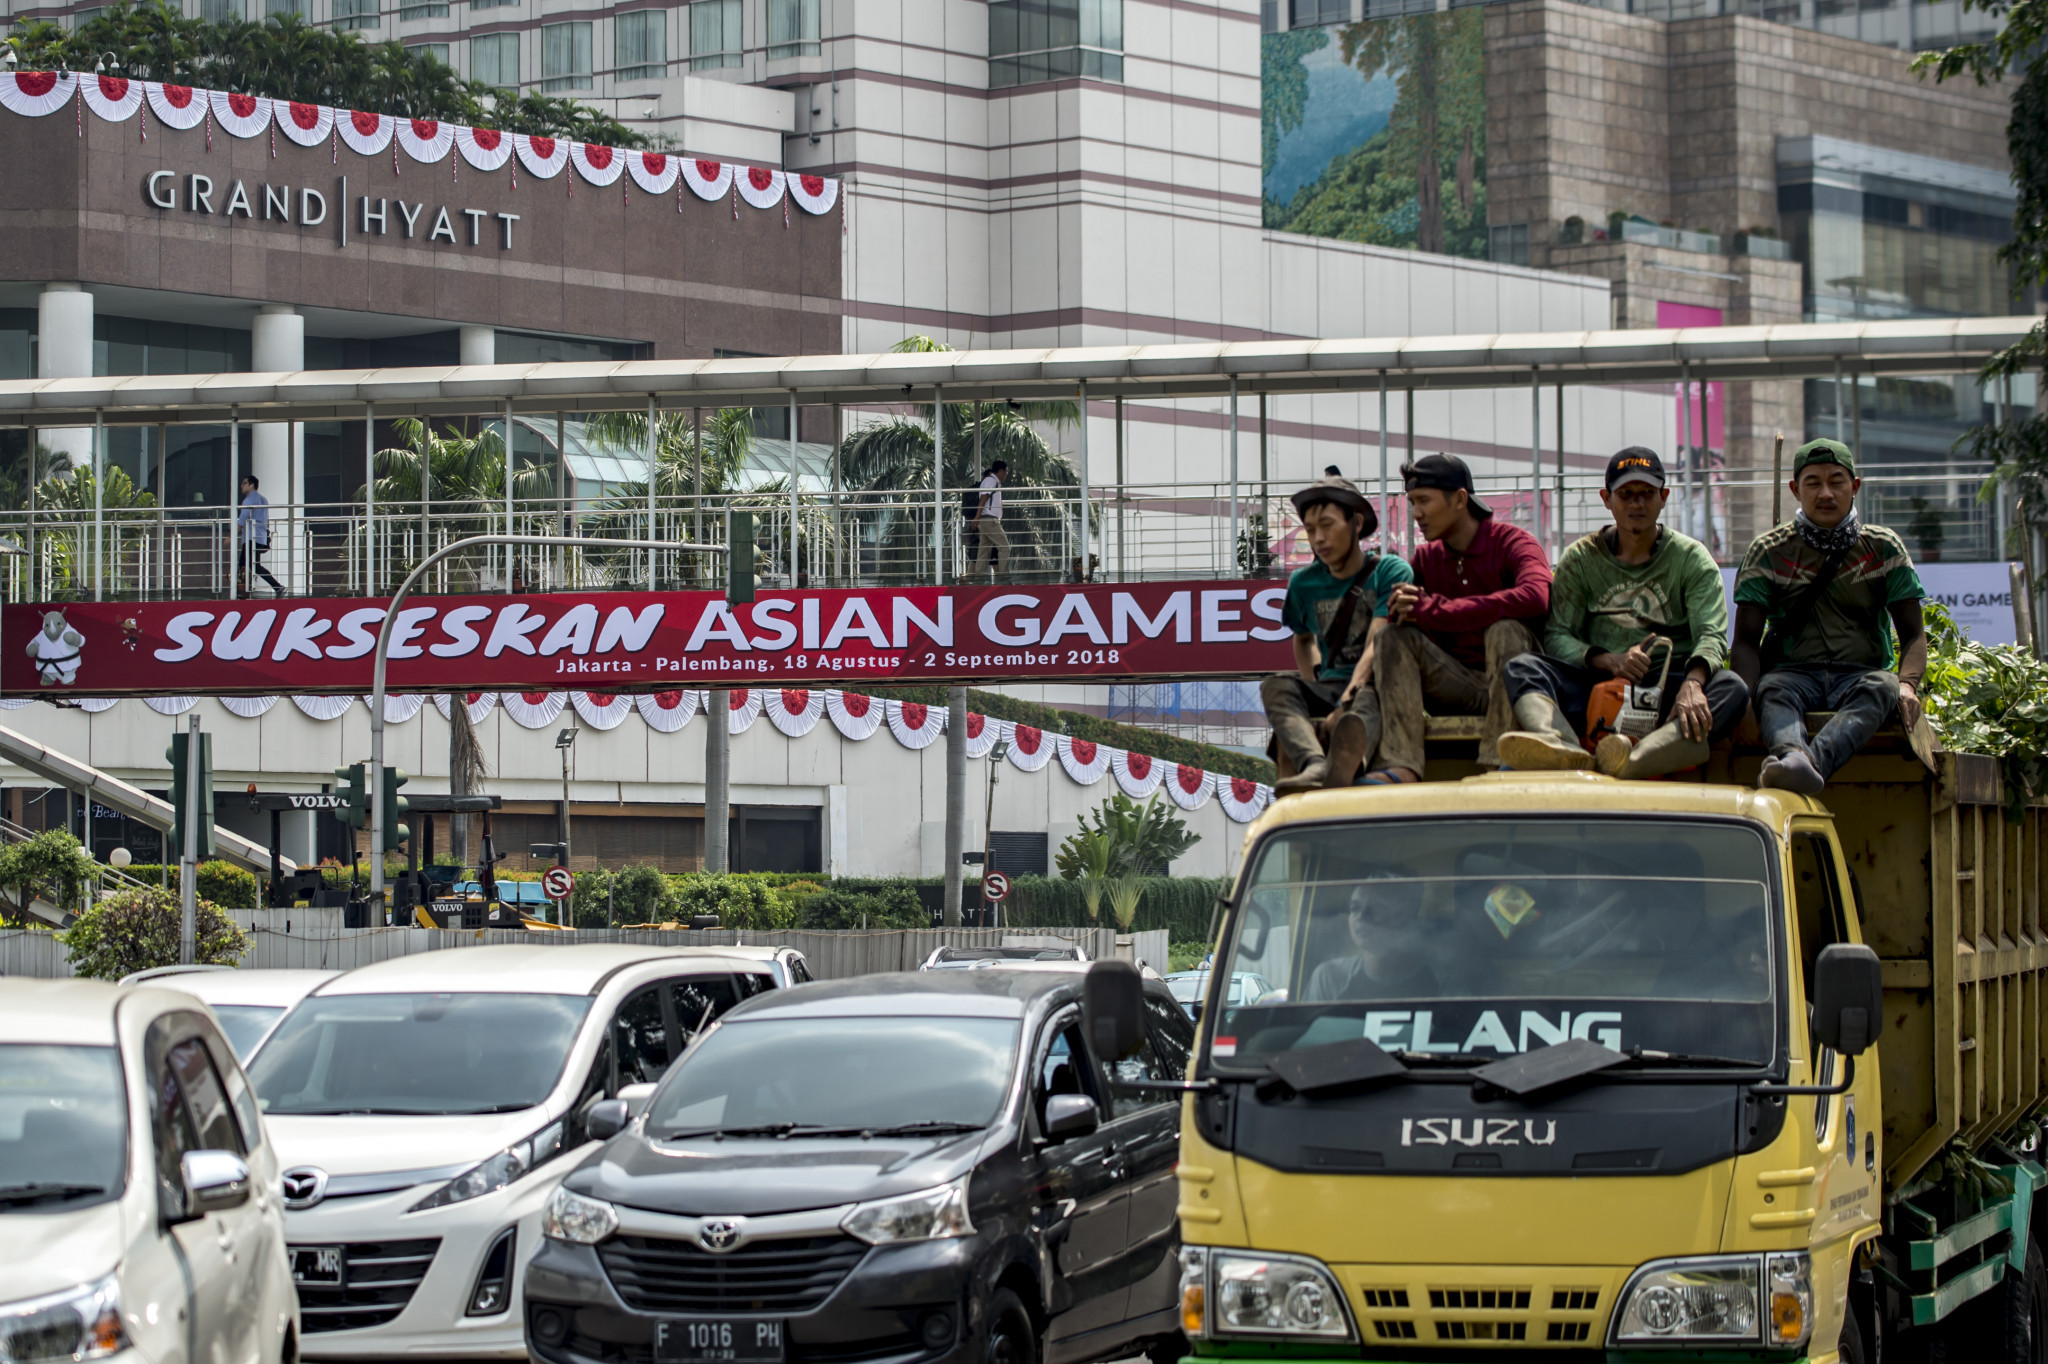 Schools in Jakarta are to be closed during the Asian Games to try to help ease the pressure on traffic ©Getty Images